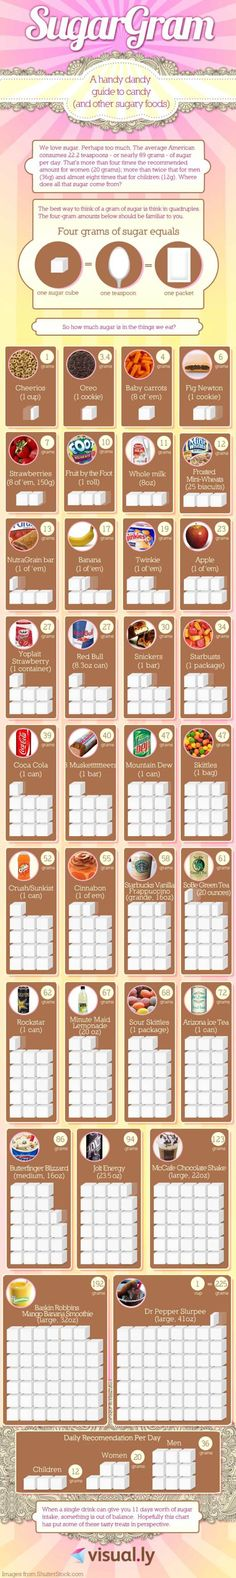 SugarGram: A Handy Dandy Guide To Candy[INFOGRAPHIC]